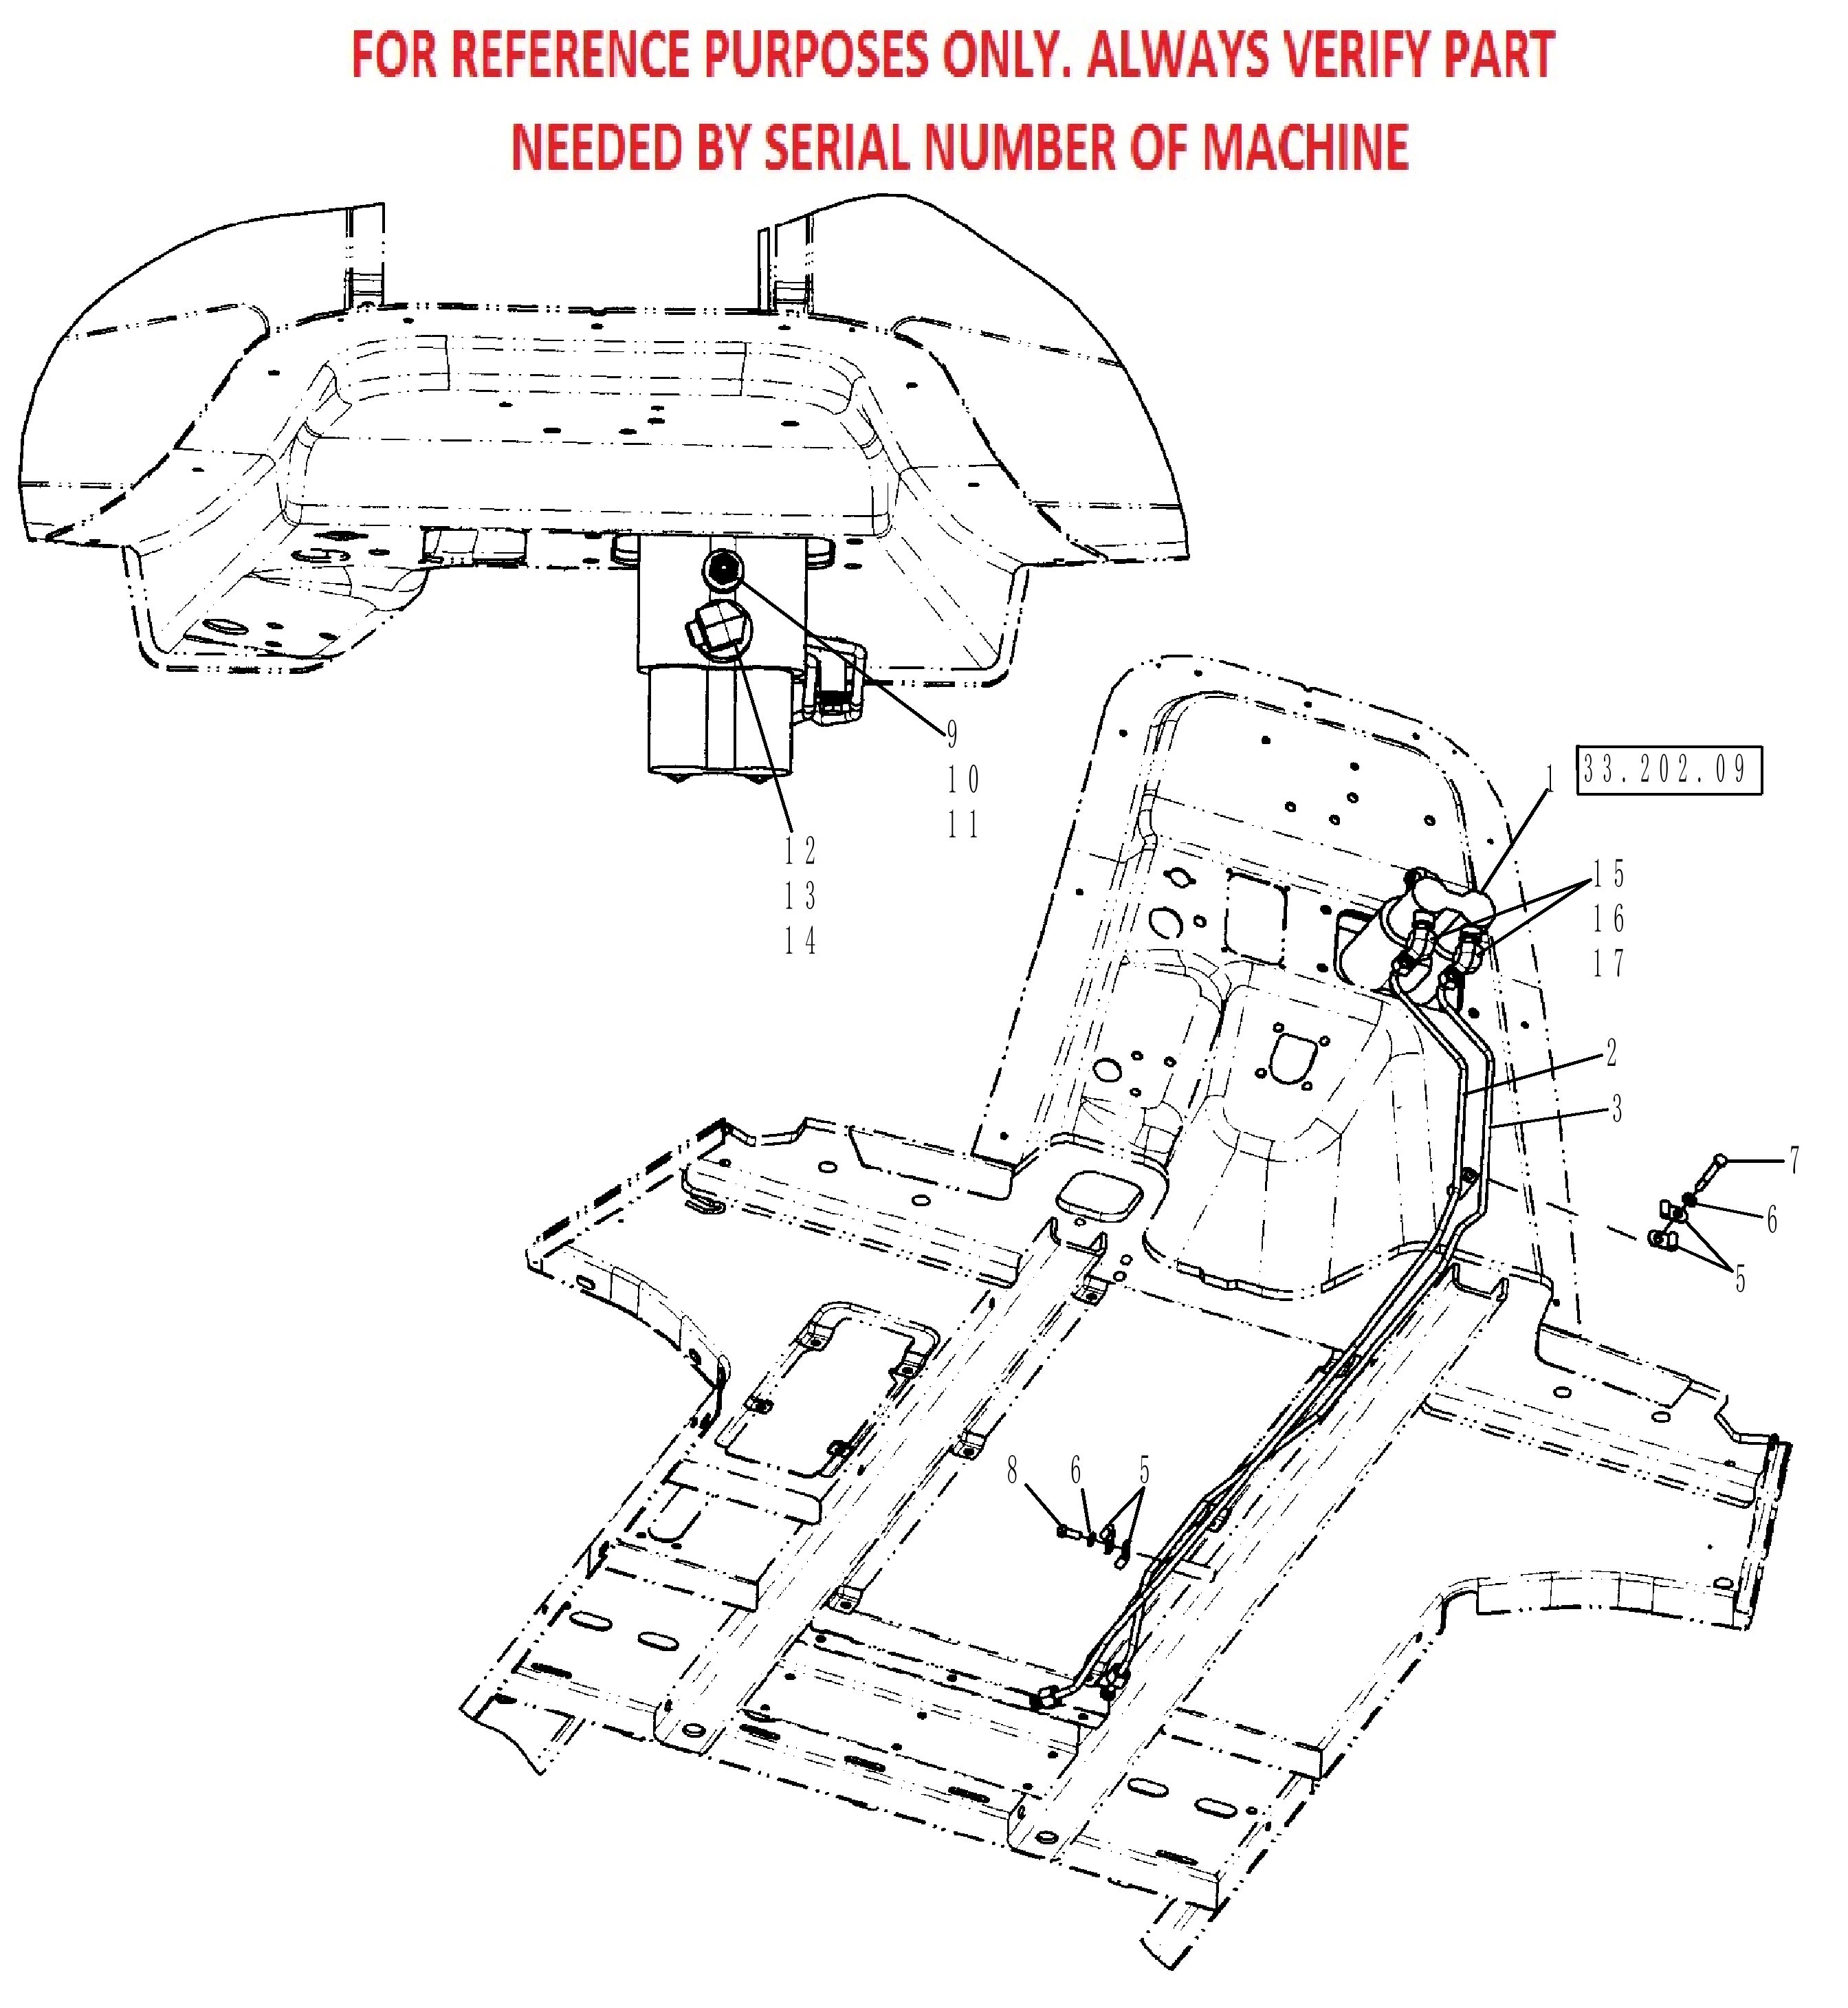 Master Cylinder Parts Diagram Case 580n Tier 3 Loader Backhoe Parts Brakes Of Master Cylinder Parts Diagram Kawasaki Klr250 Kawasaki Klr250 Parts Diagrams